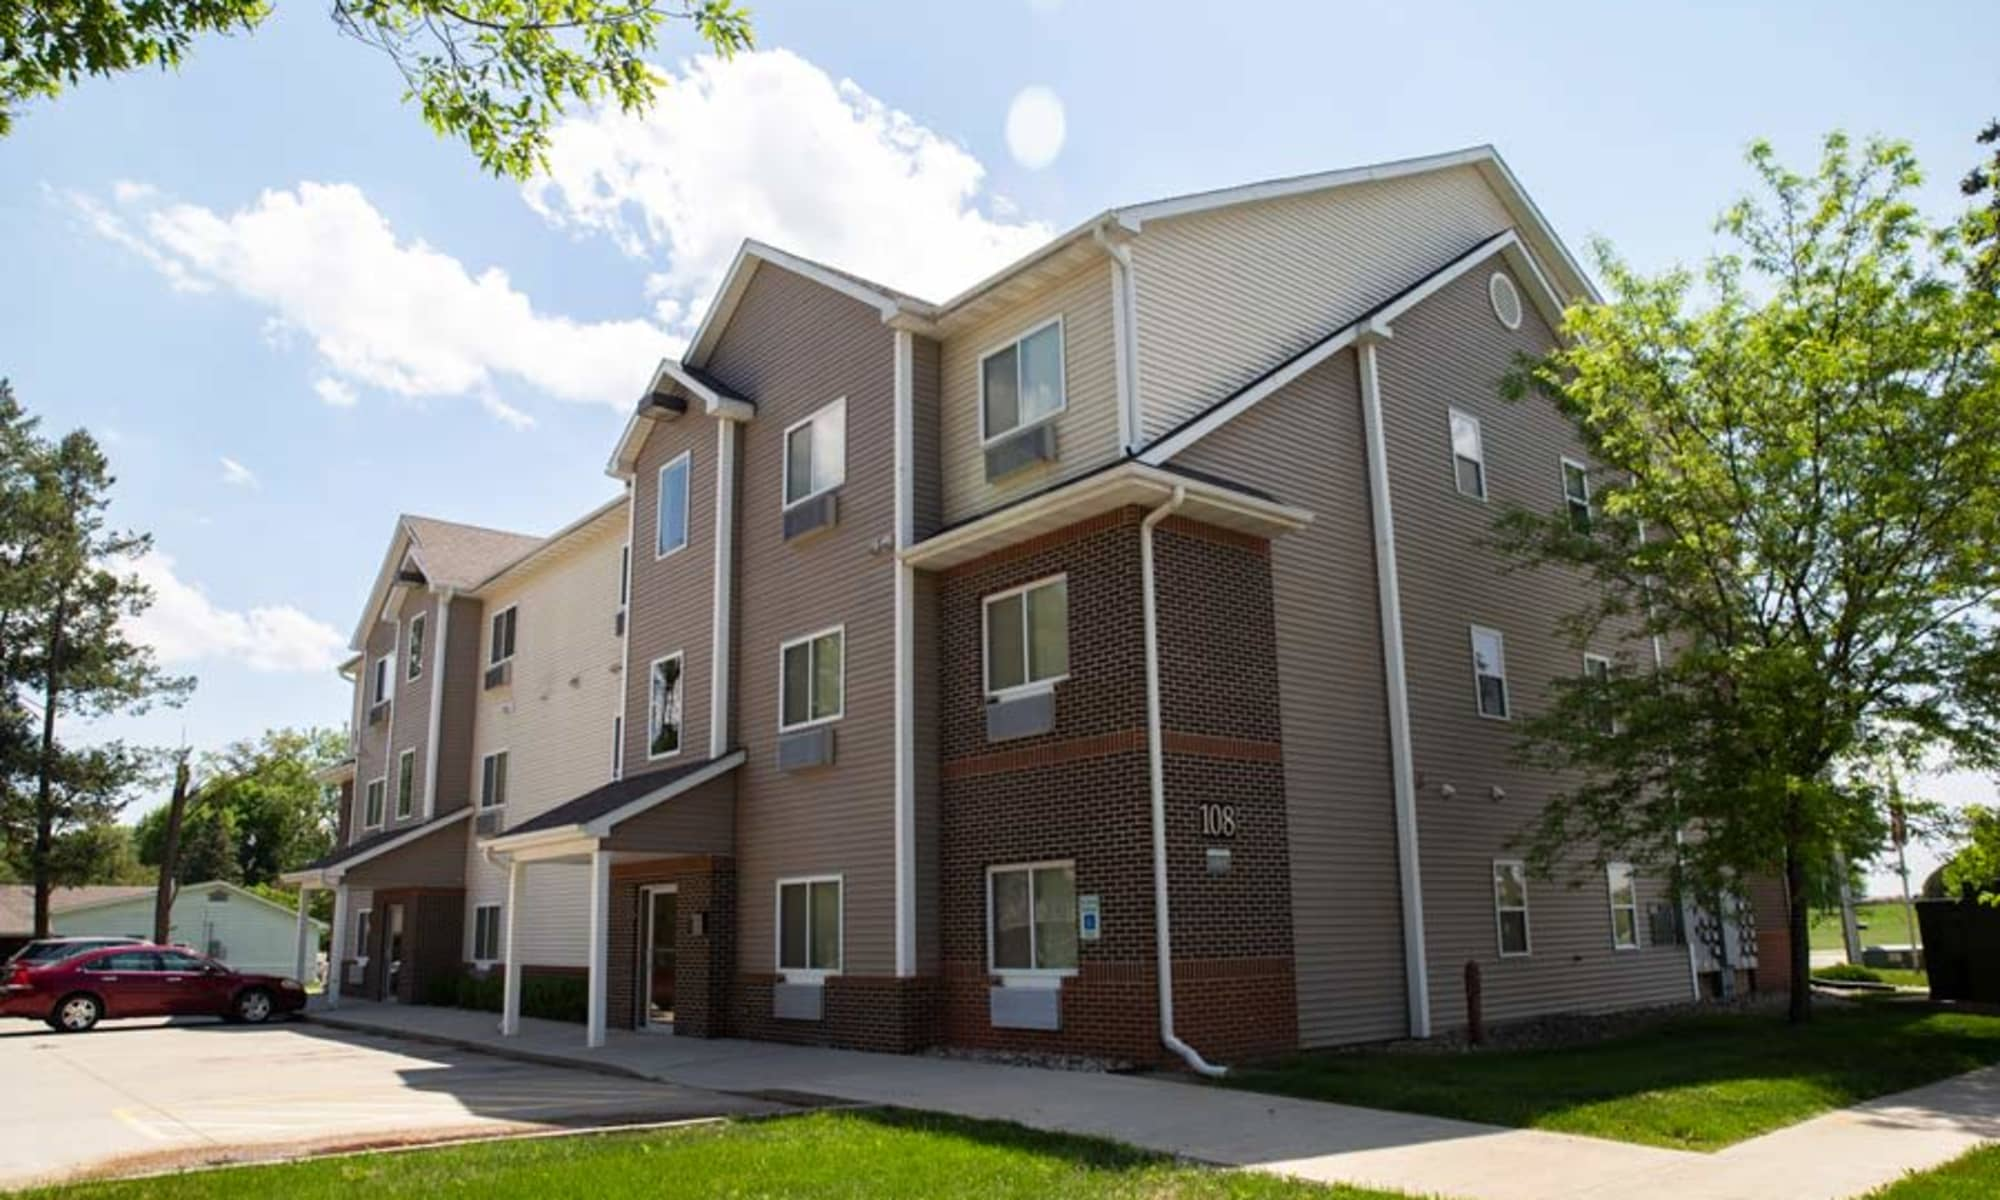 Crown Point Apartments in Ames, Iowa